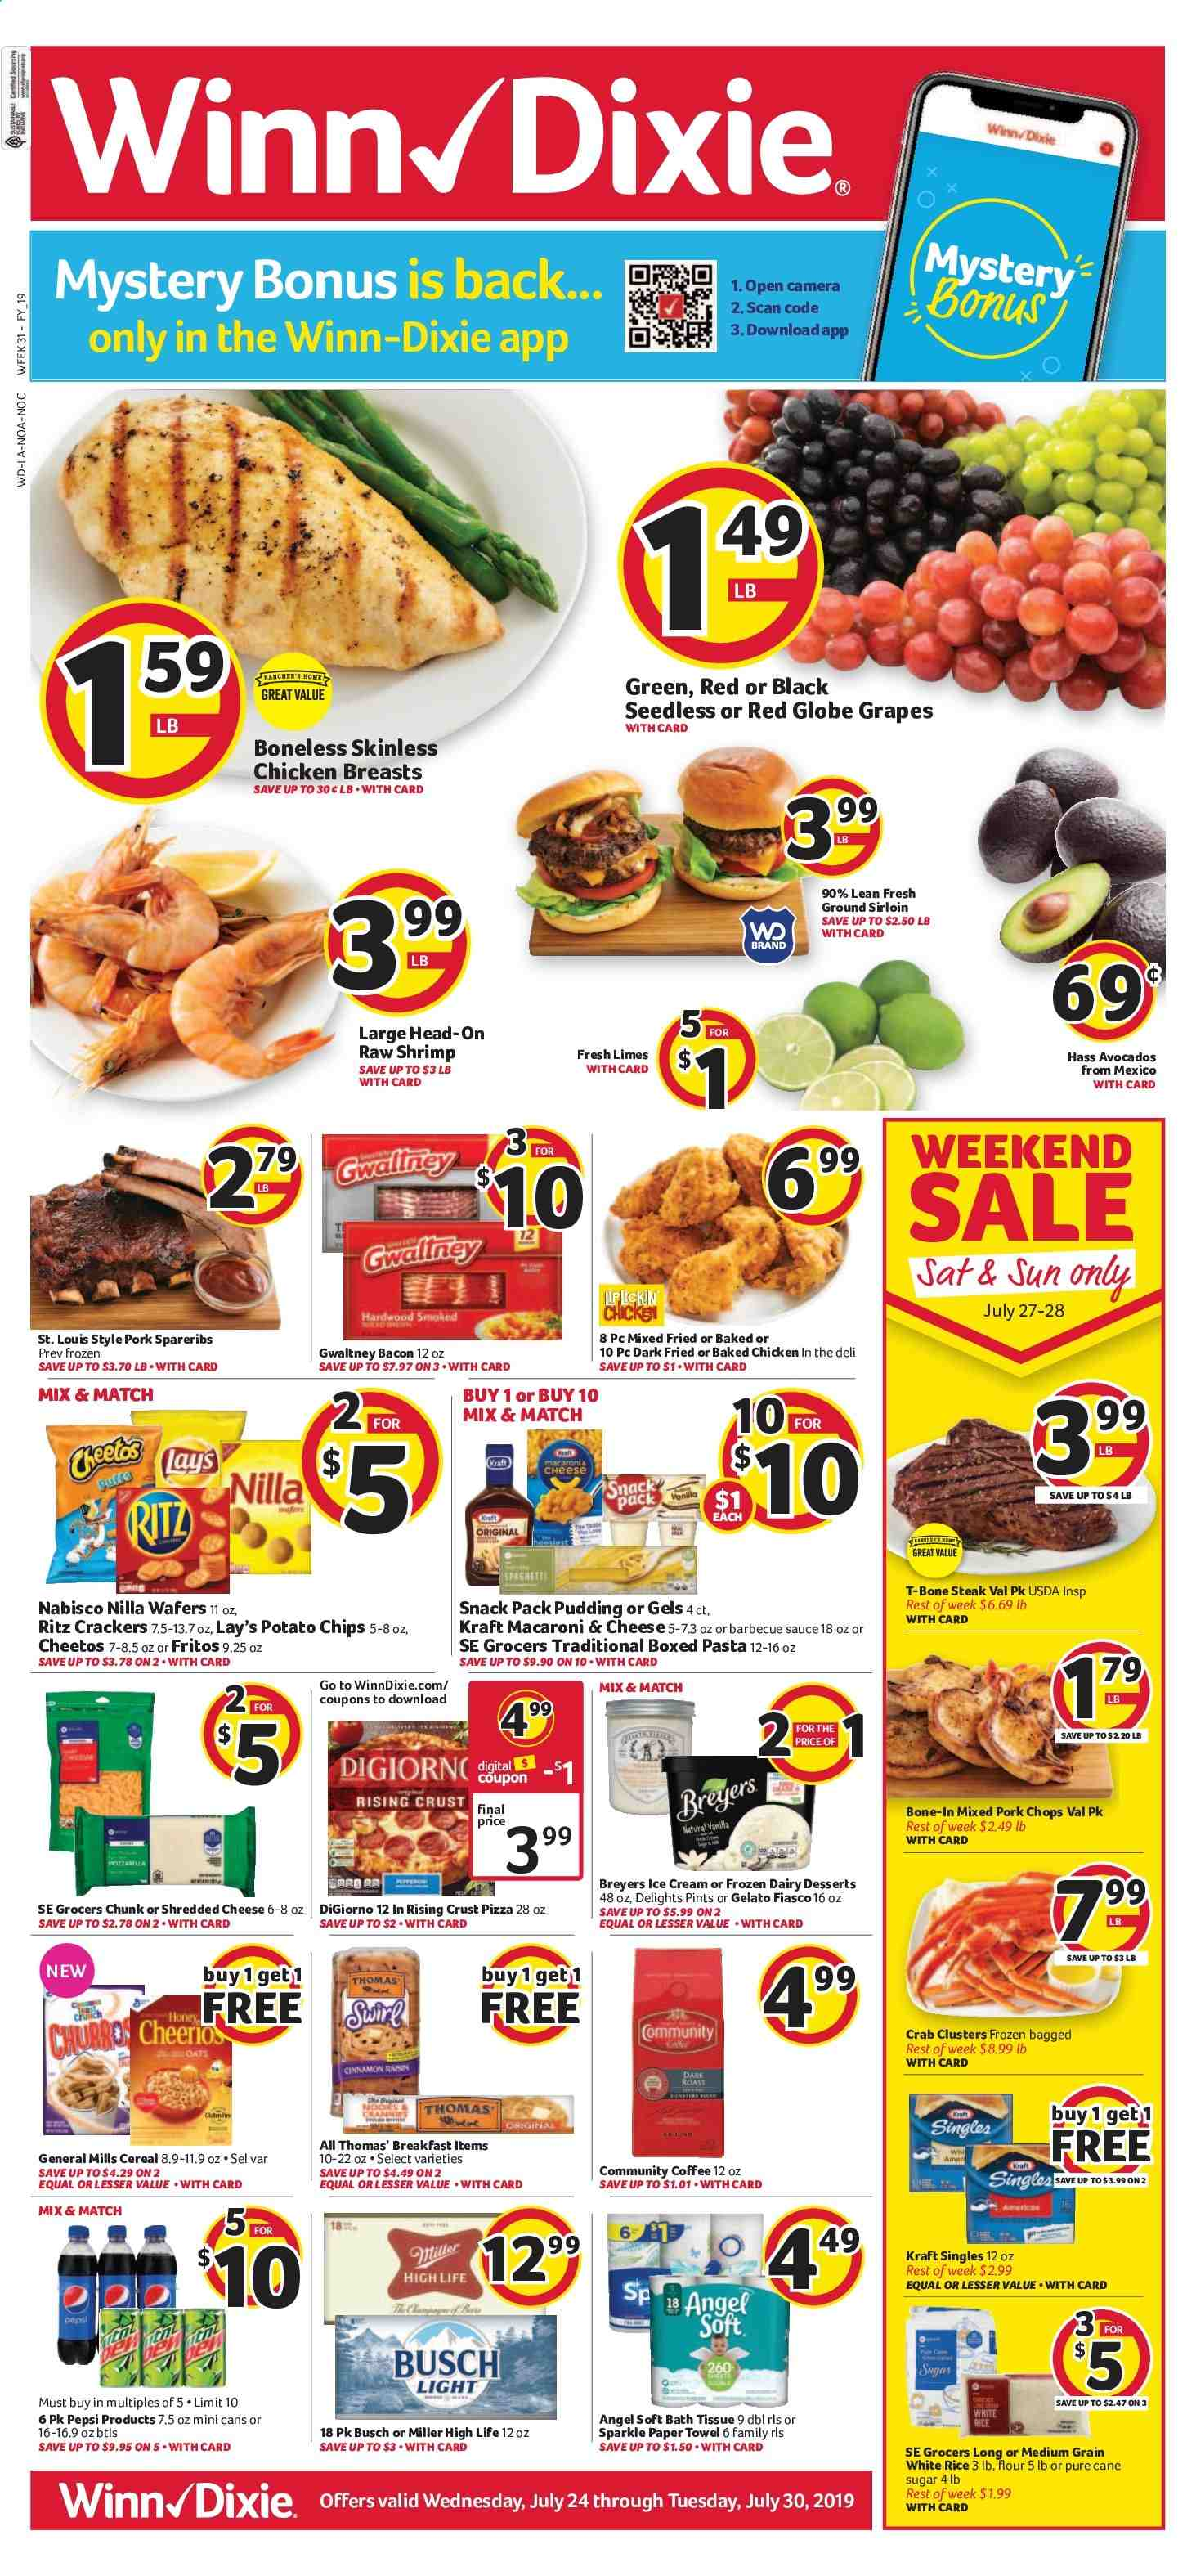 Winn Dixie Flyer  - 07.24.2019 - 07.30.2019. Page 1.